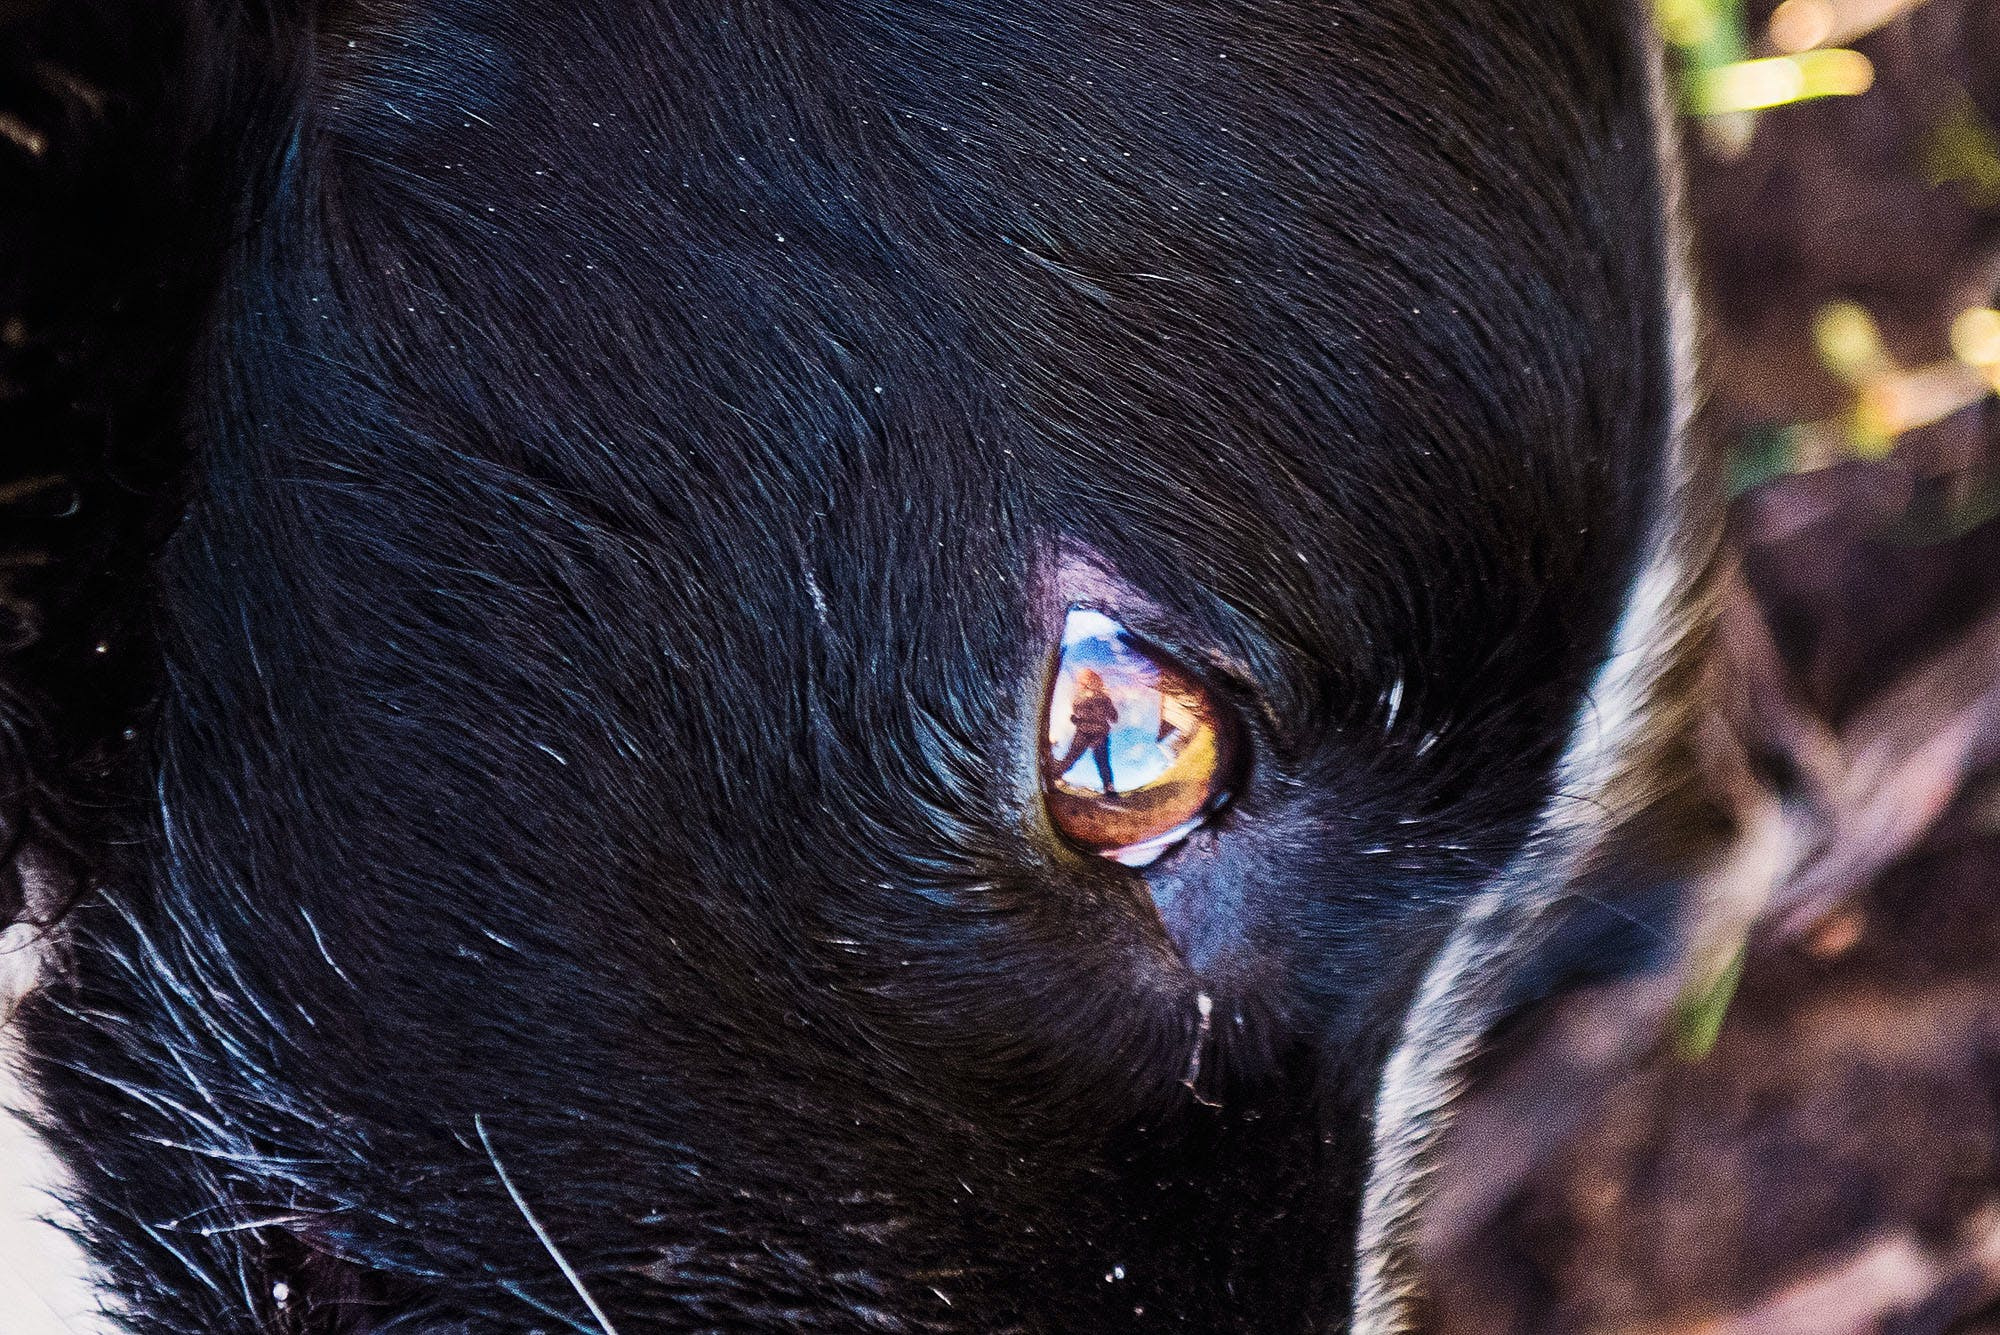 of border collie, country, dog, eye